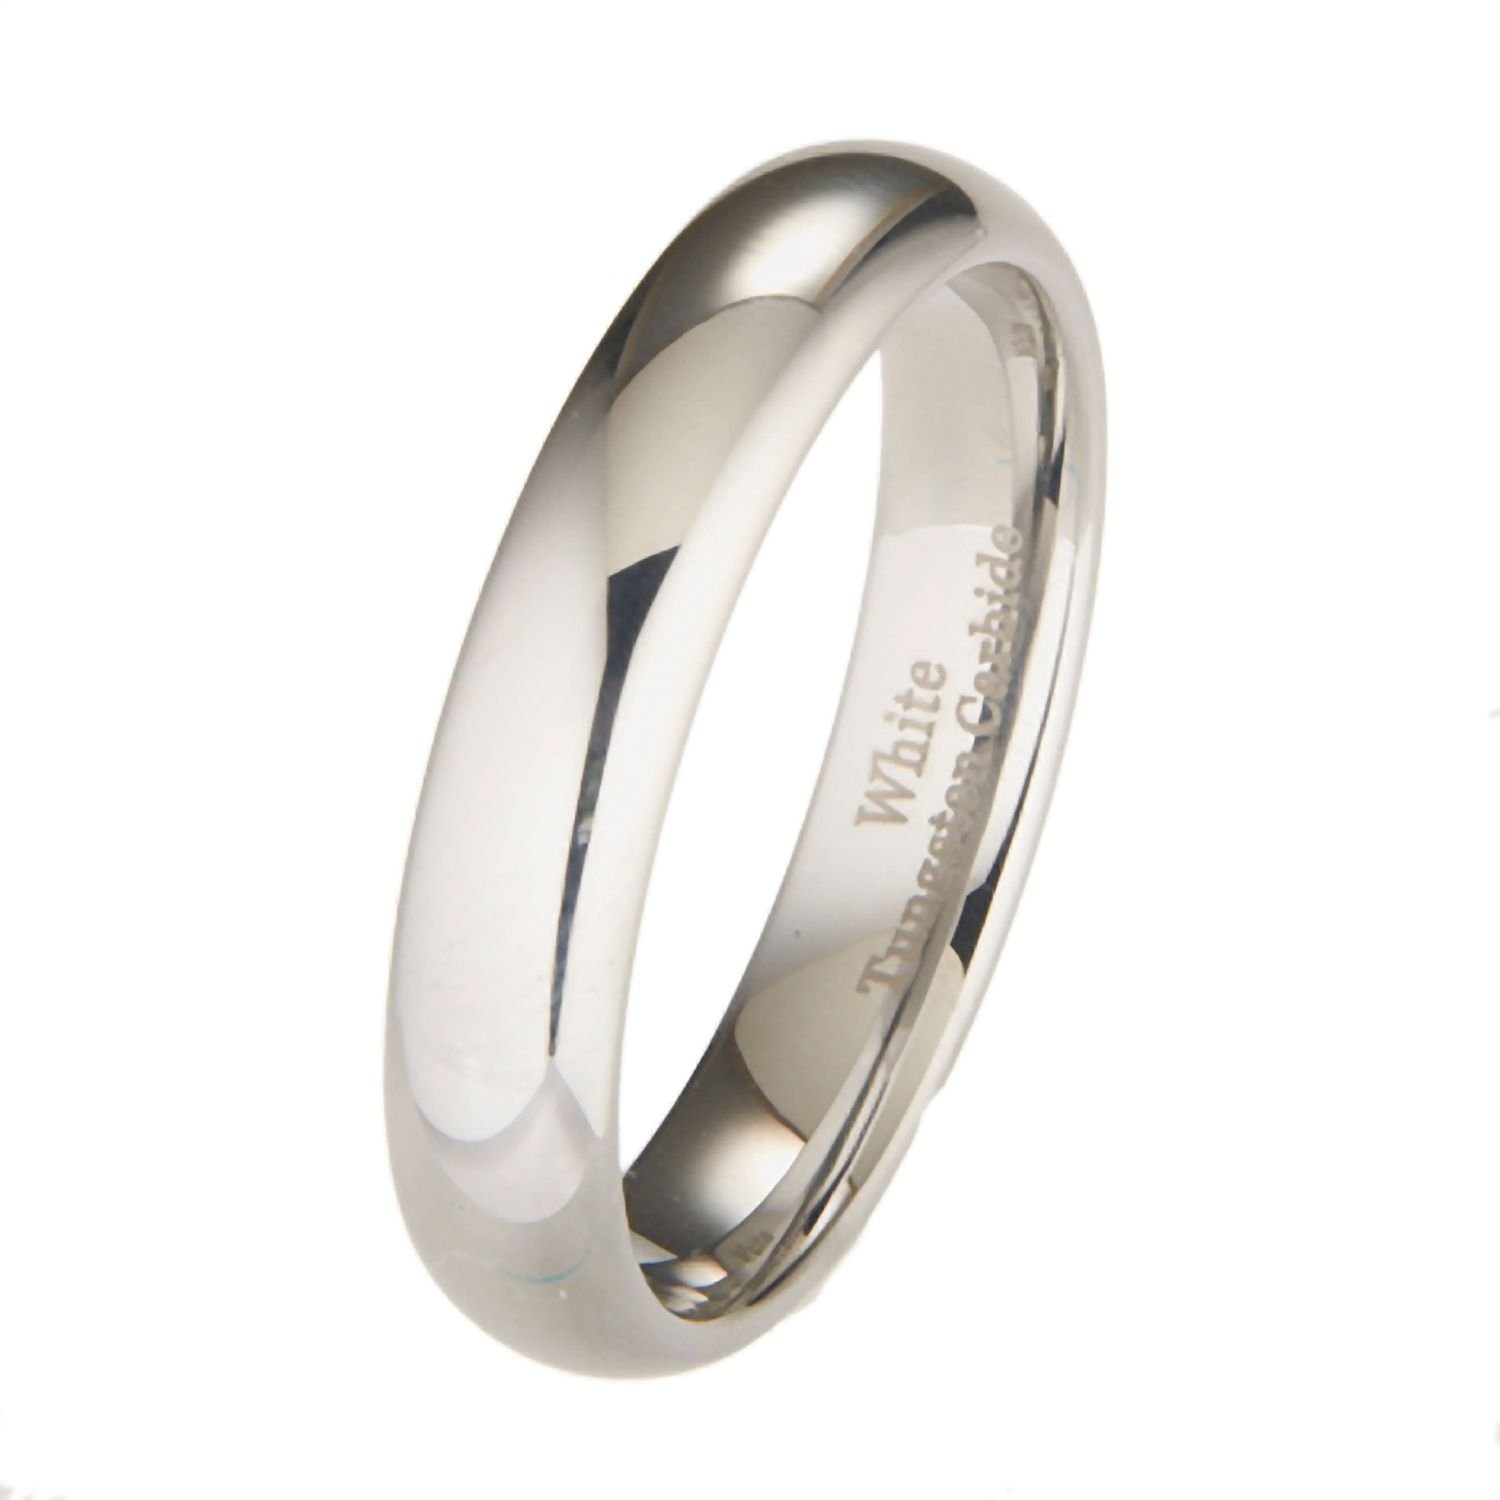 5mm White Tungsten Carbide Polished Classic Wedding Ring MJ Metals Jewelry WTG-1745P